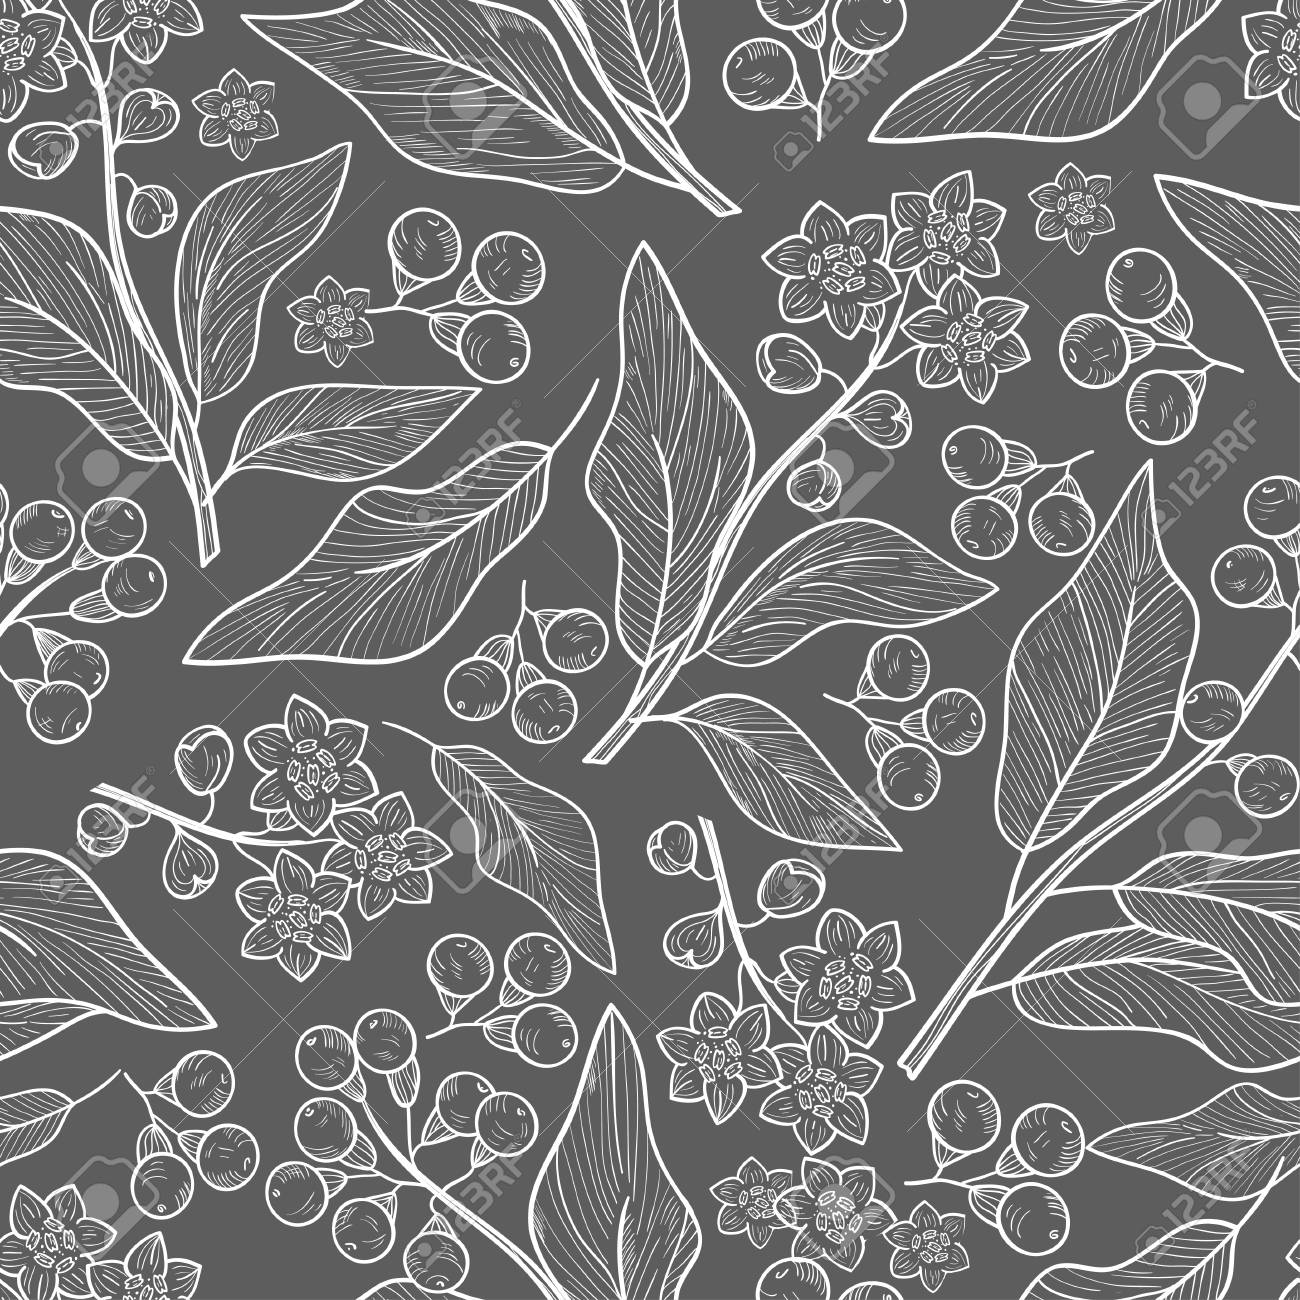 Camphor Plant Leaves Fruit Wallpaper Seamless Sketch Gray Royalty Free Cliparts Vectors And Stock Illustration Image 113562804